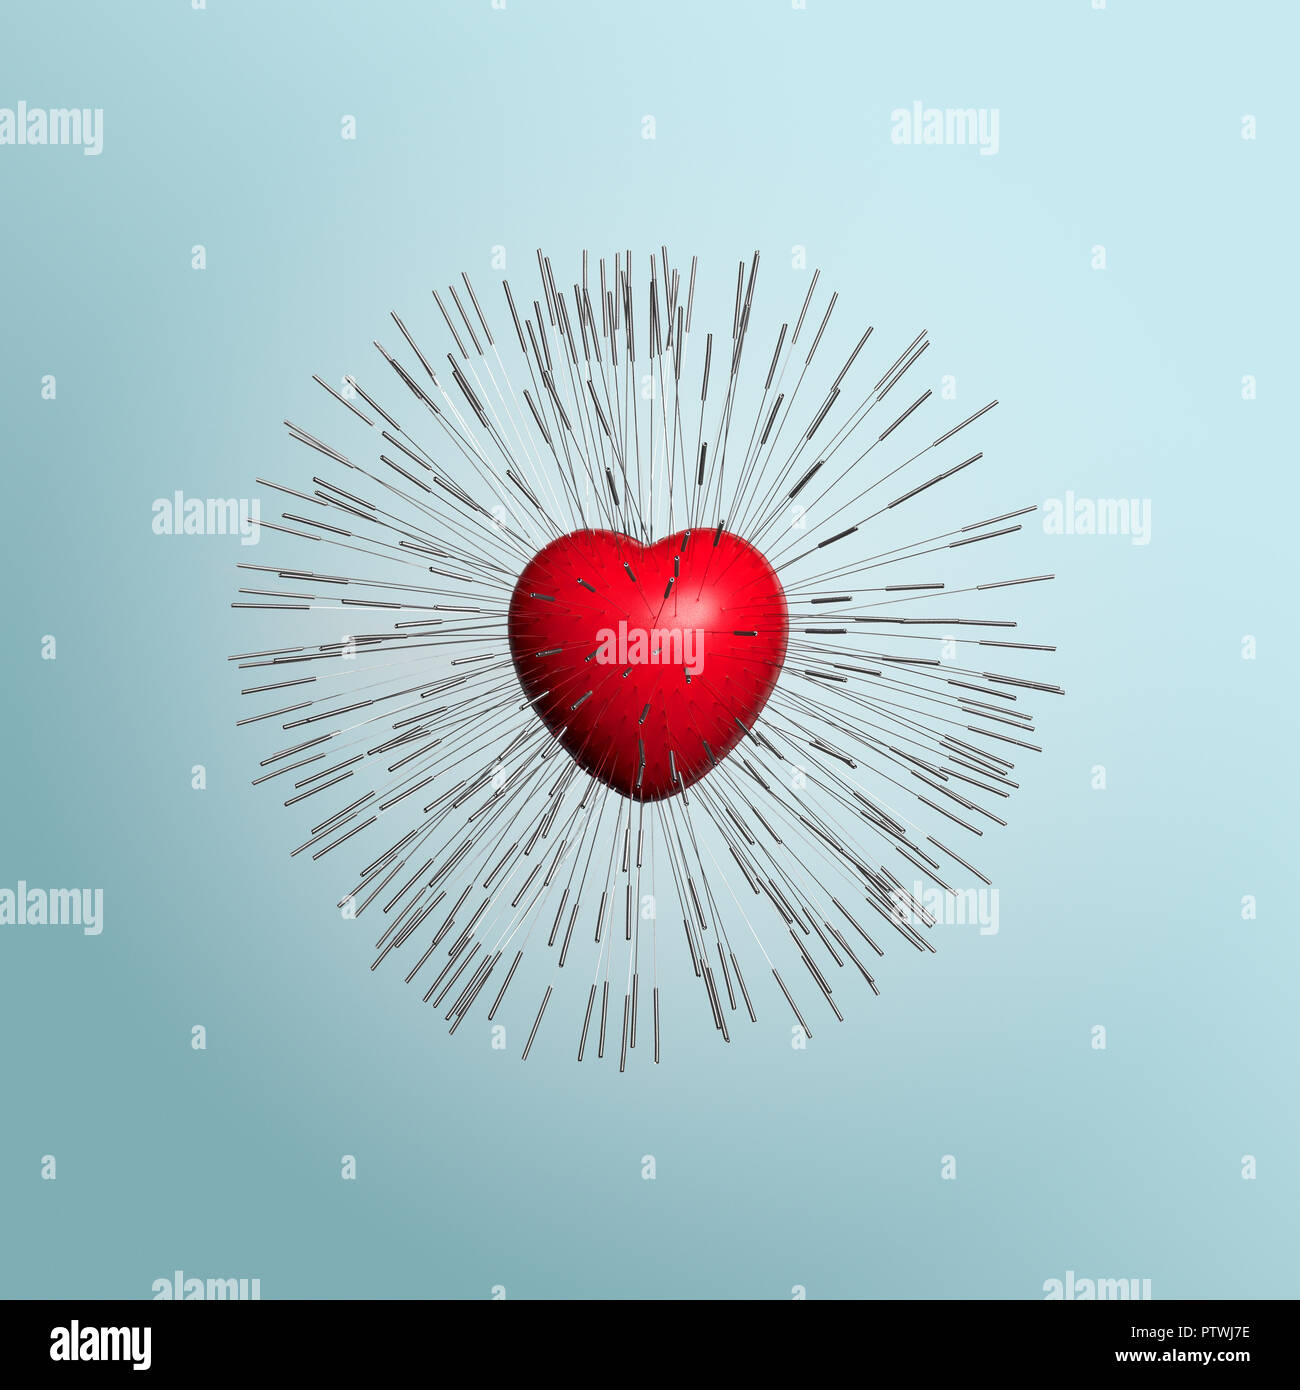 Red heart shape with acupuncture needles inserted - Stock Image